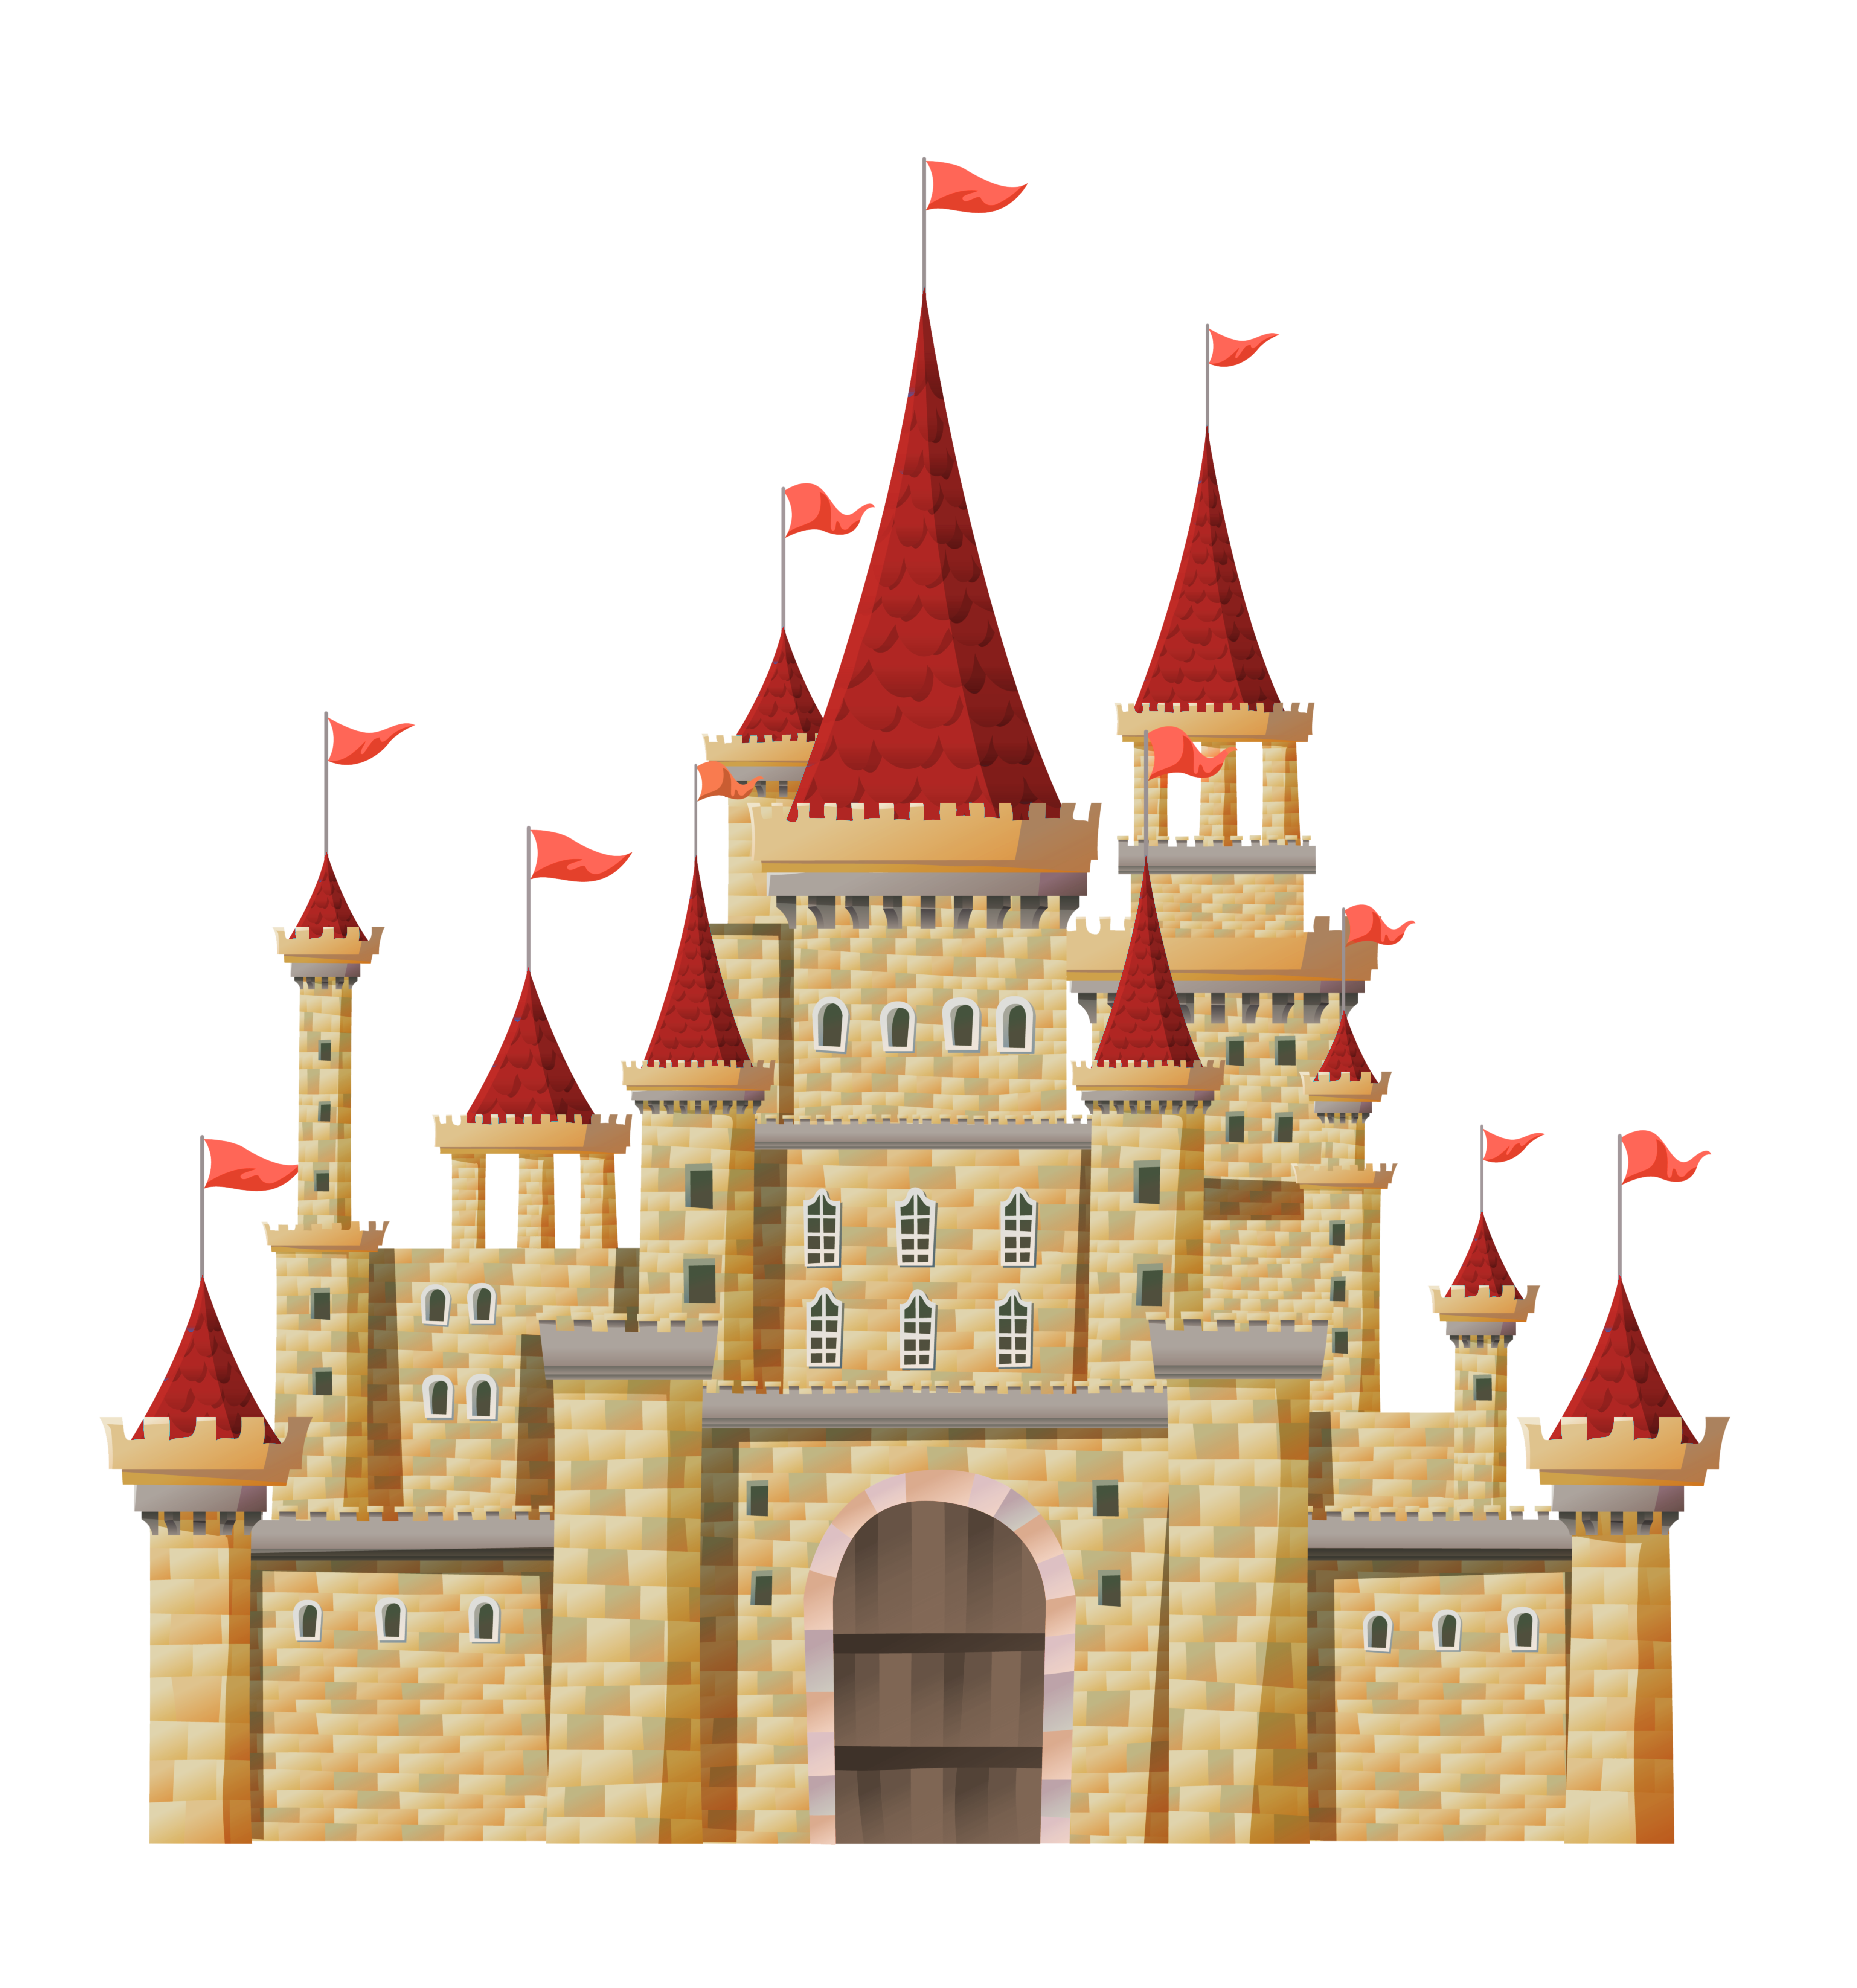 Castle clipart 20 free Cliparts | Download images on ...